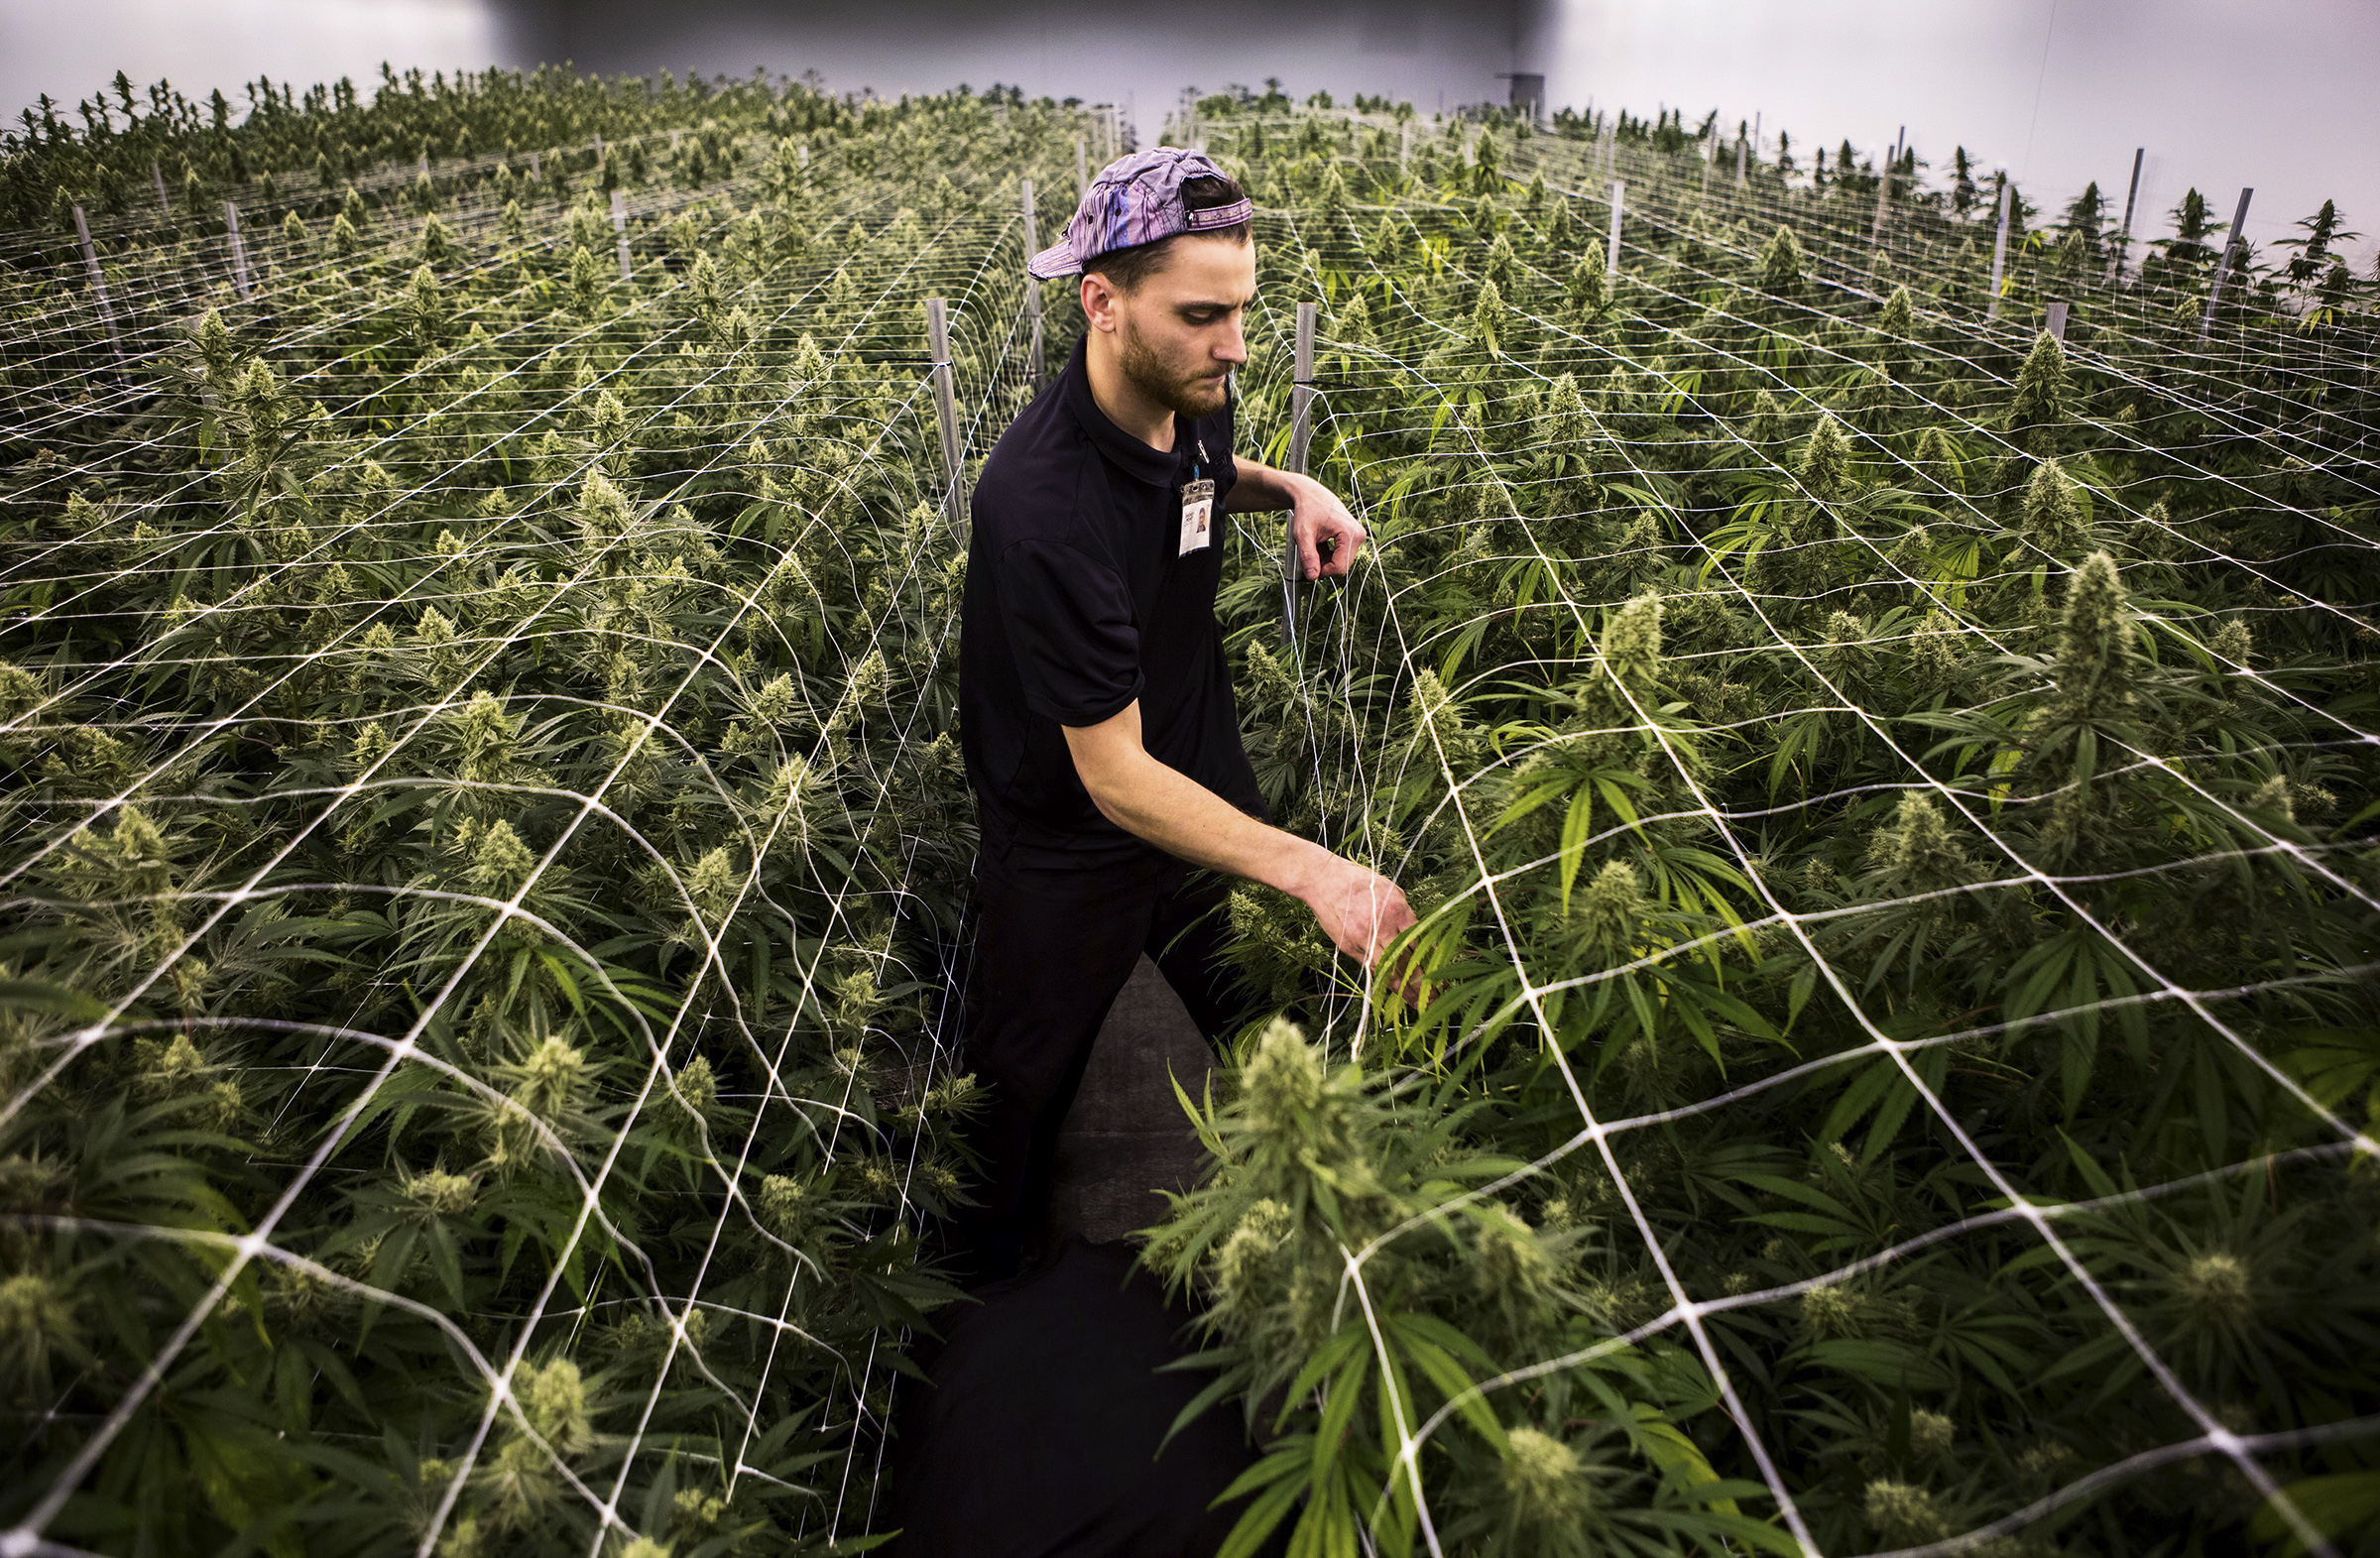 Chase Neumann helps trim plants in one of the grow rooms on Wednesday, Jan. 16, at Smokey Point Productions' Rolling Farms in Arlington. Smokey Point Productions', The Clone Zone, an extension farm that employs 30 workers, faces a state-mandated shutdown after receiving four, non-criminal violations between 2015 and 2017.